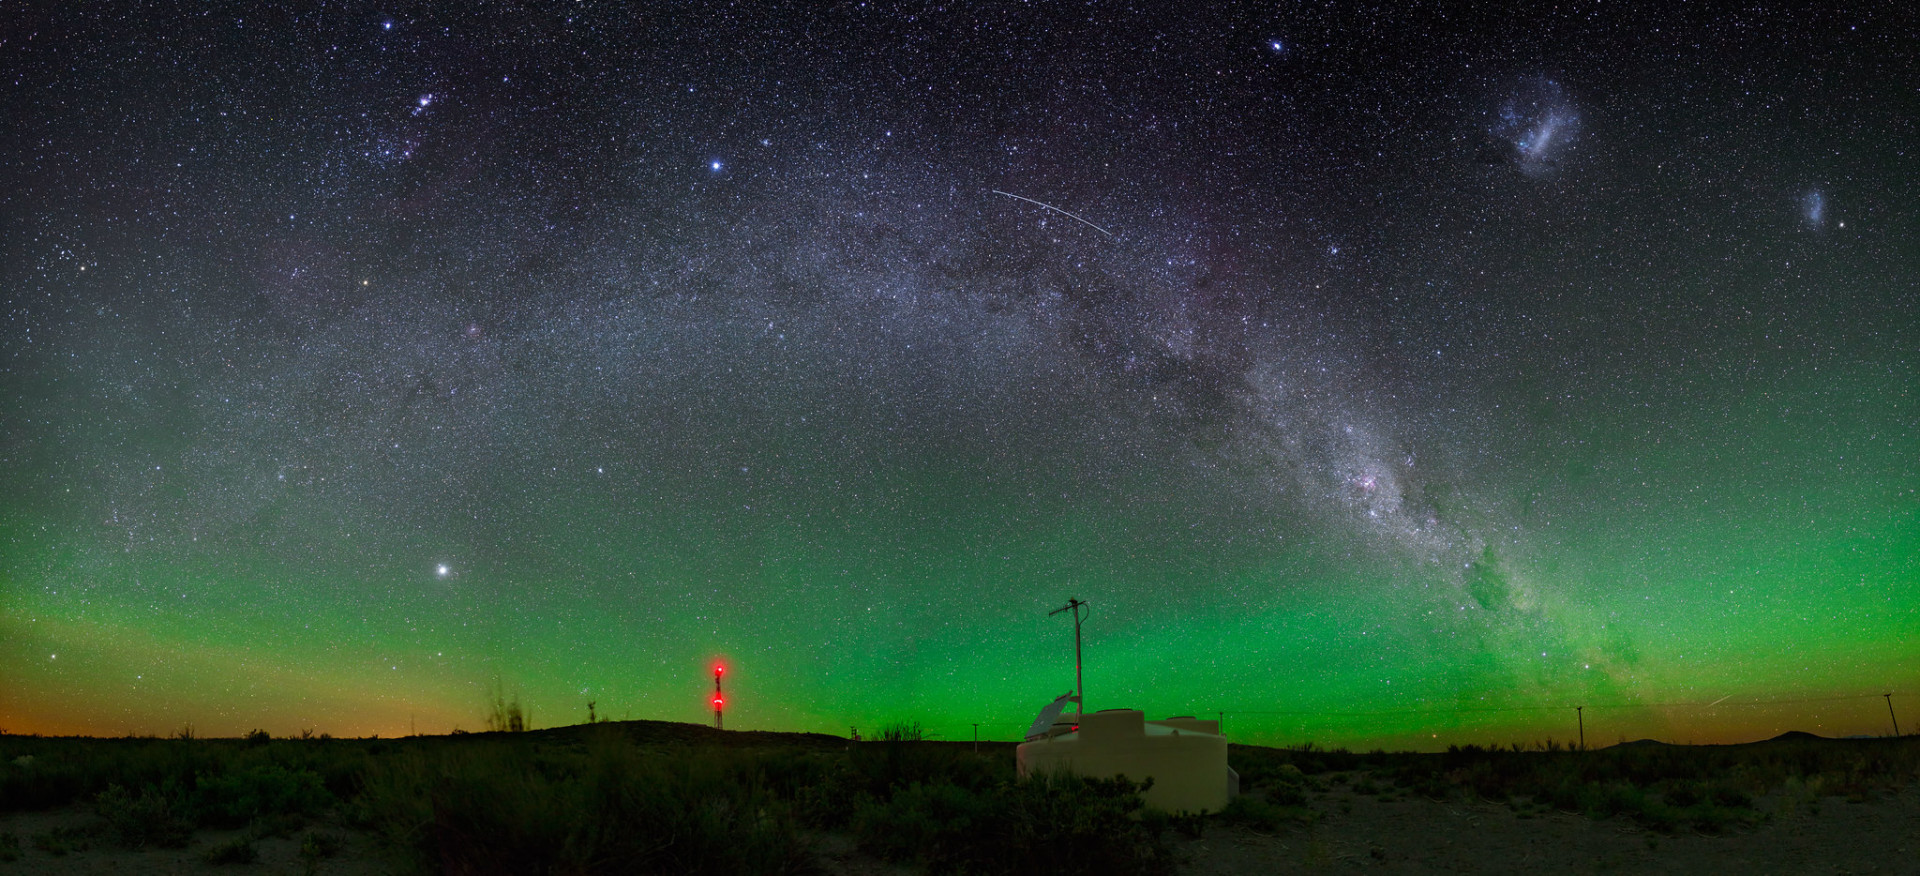 The Pierre Auger Observatory is publishing data on cosmic rays for use in science and education